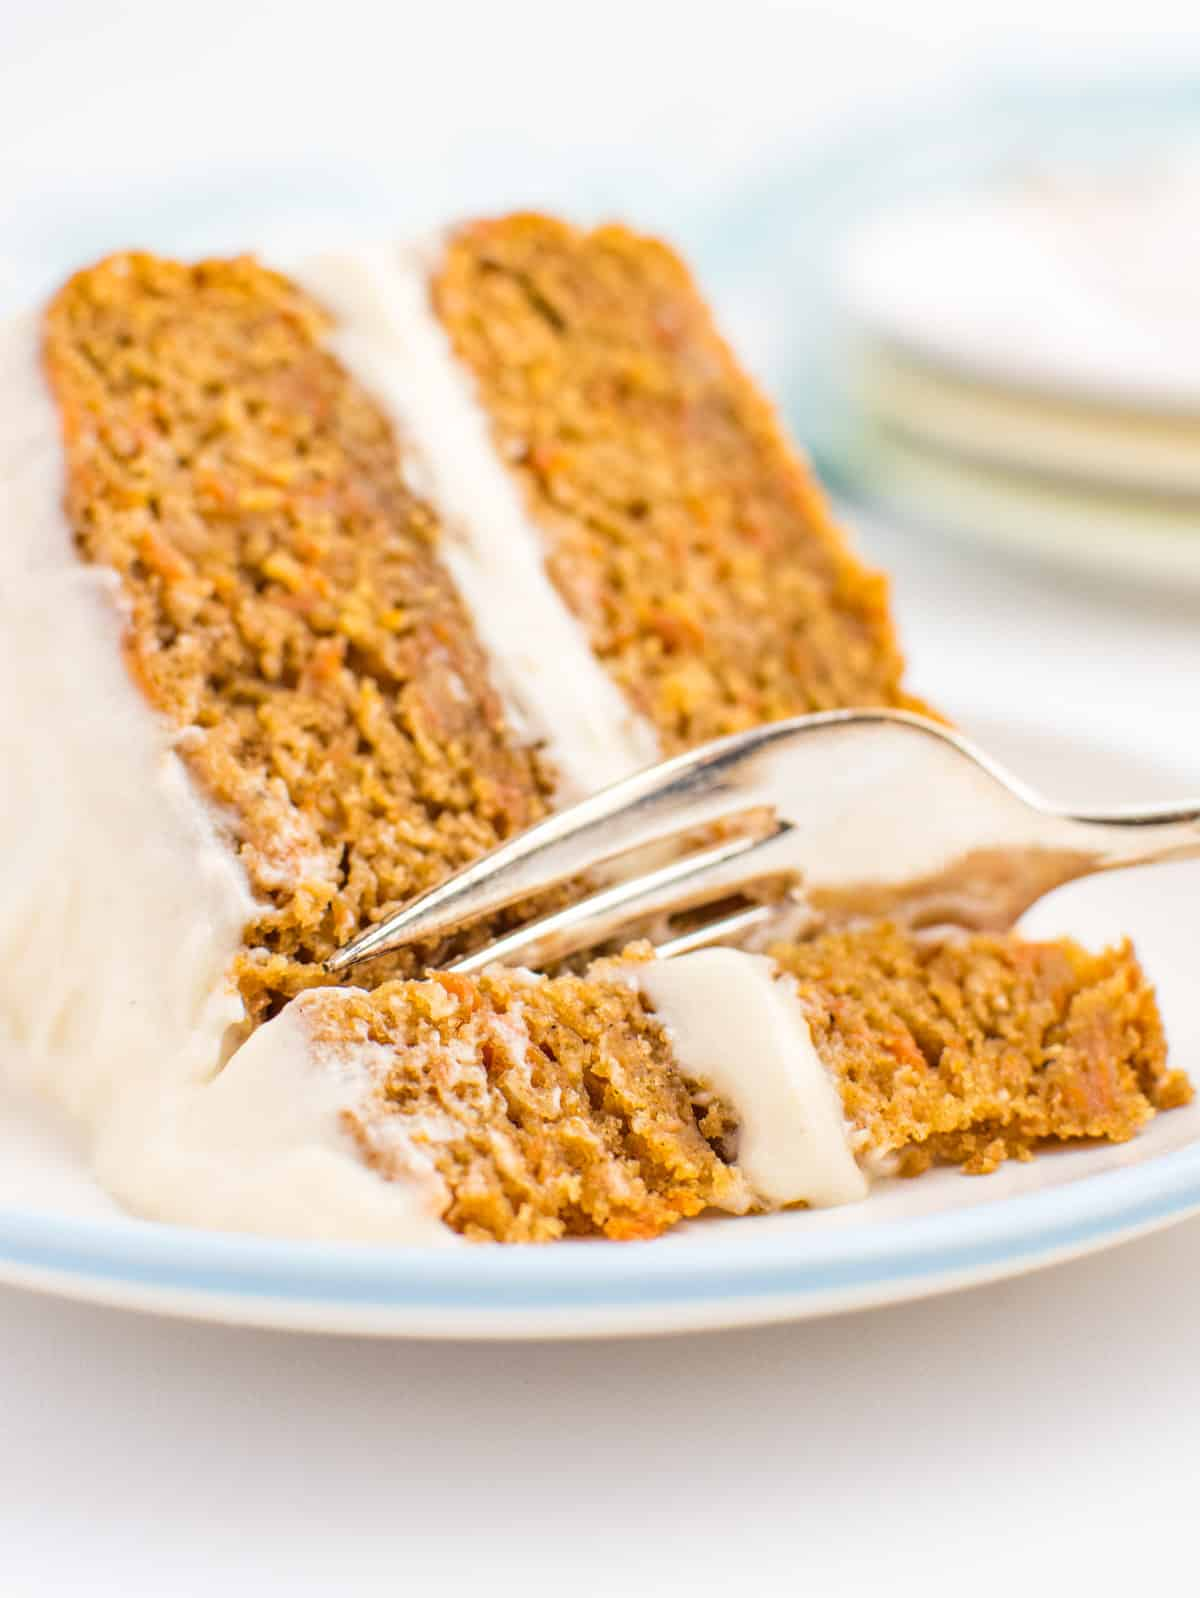 A fork cutting into a slice of vegan carrot cake.